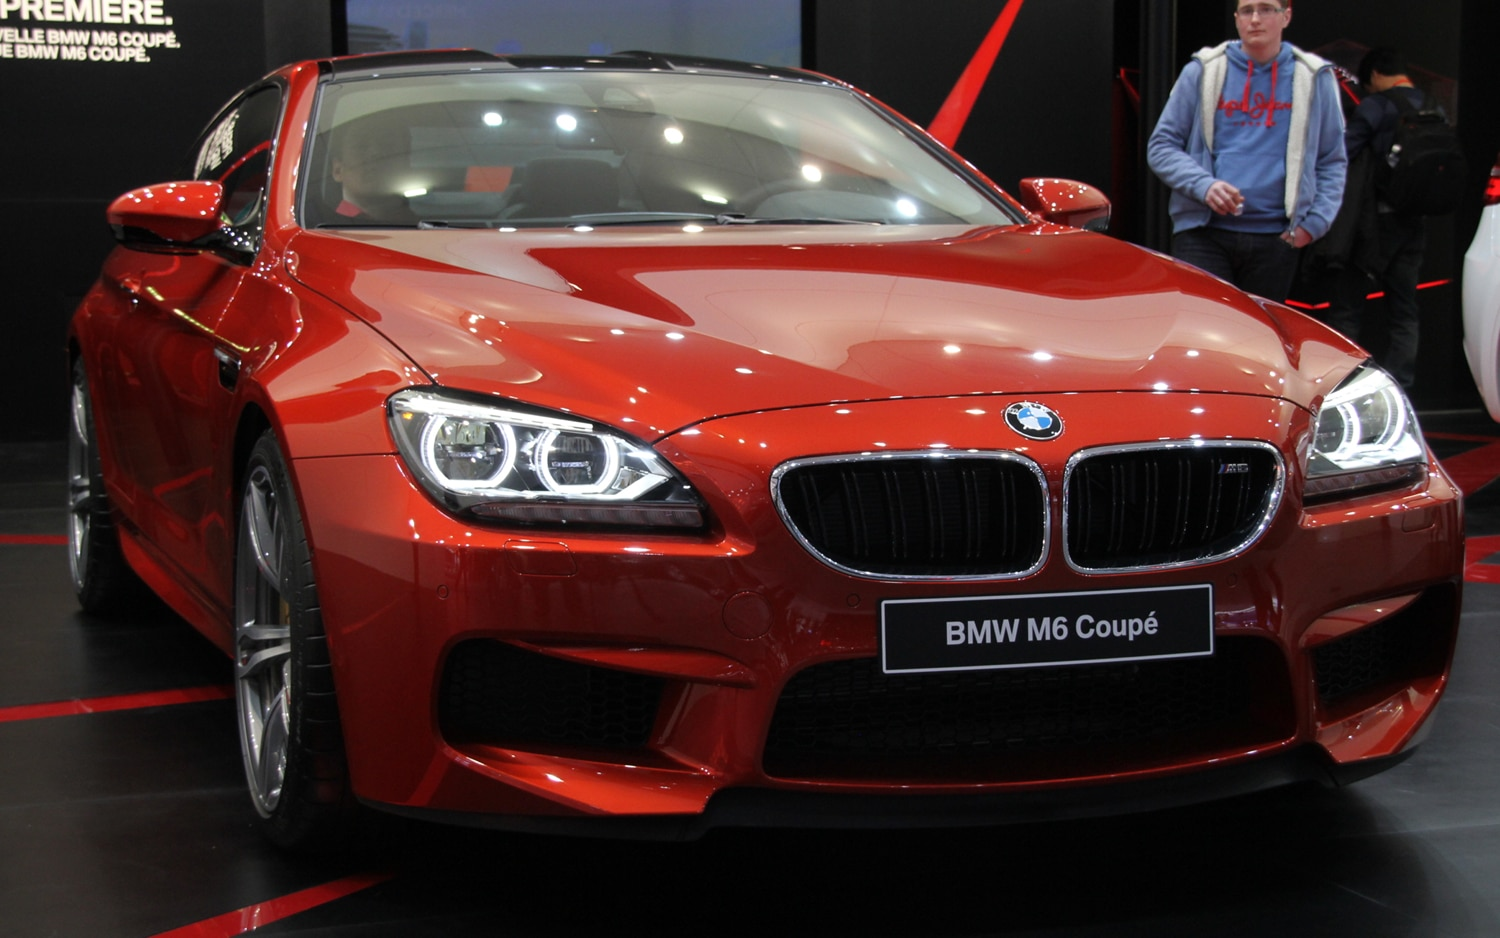 2013 BMW M6 Coupe Front View1